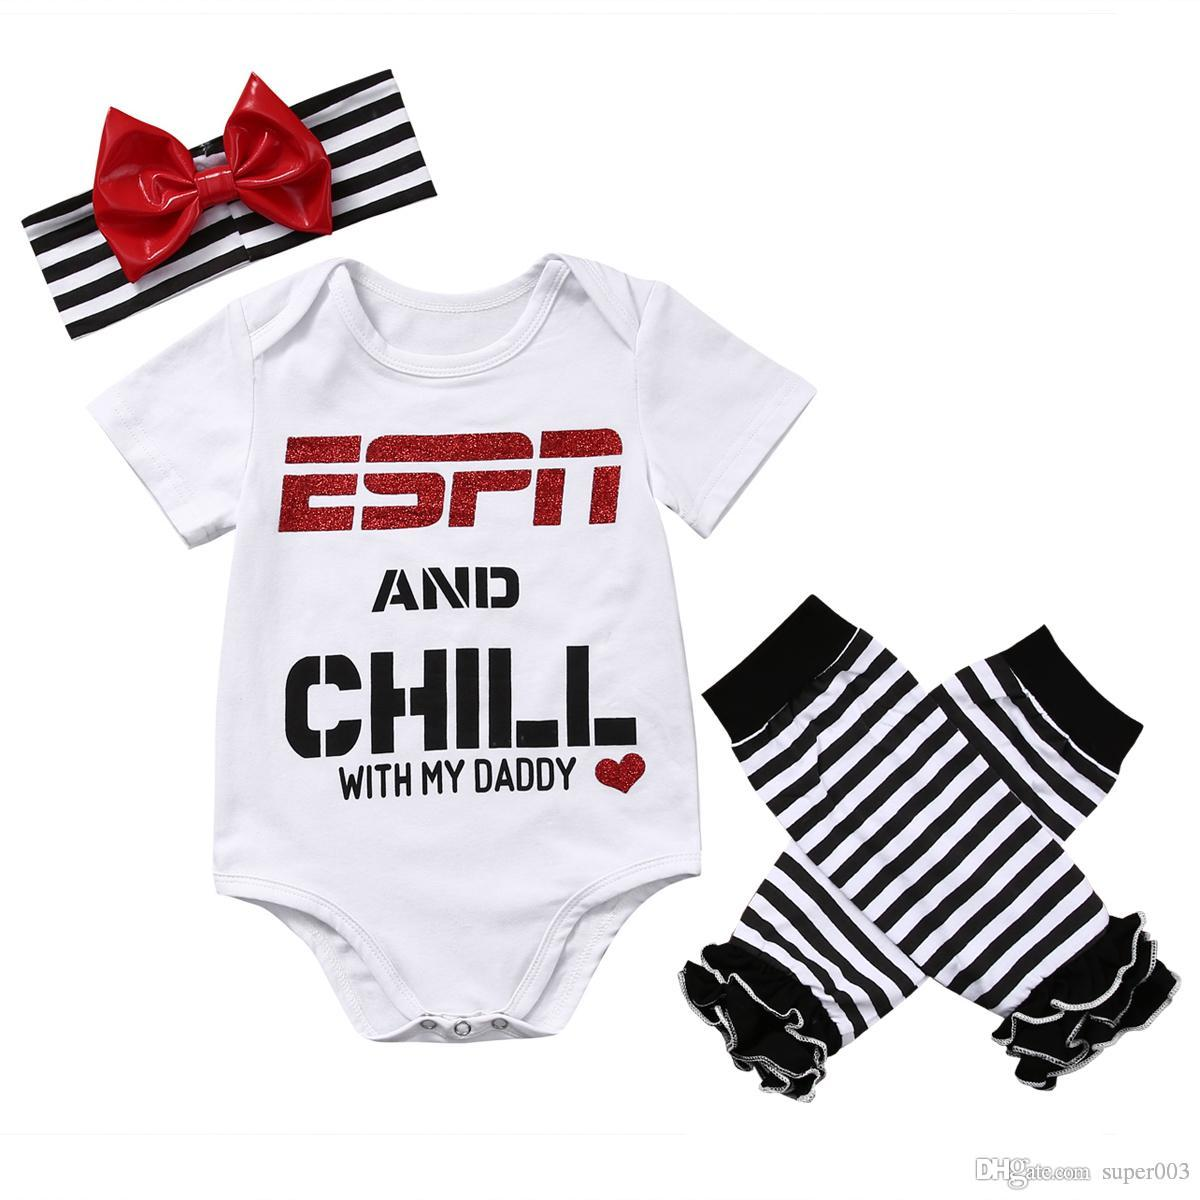 2ec90e25915f Newborn Baby Girls Clothing Set ESPN And Chill with My Daddy Romper Jumpsuit  Leg Warmers Headband Outfit Online with  4.87 Set on Super003 s Store